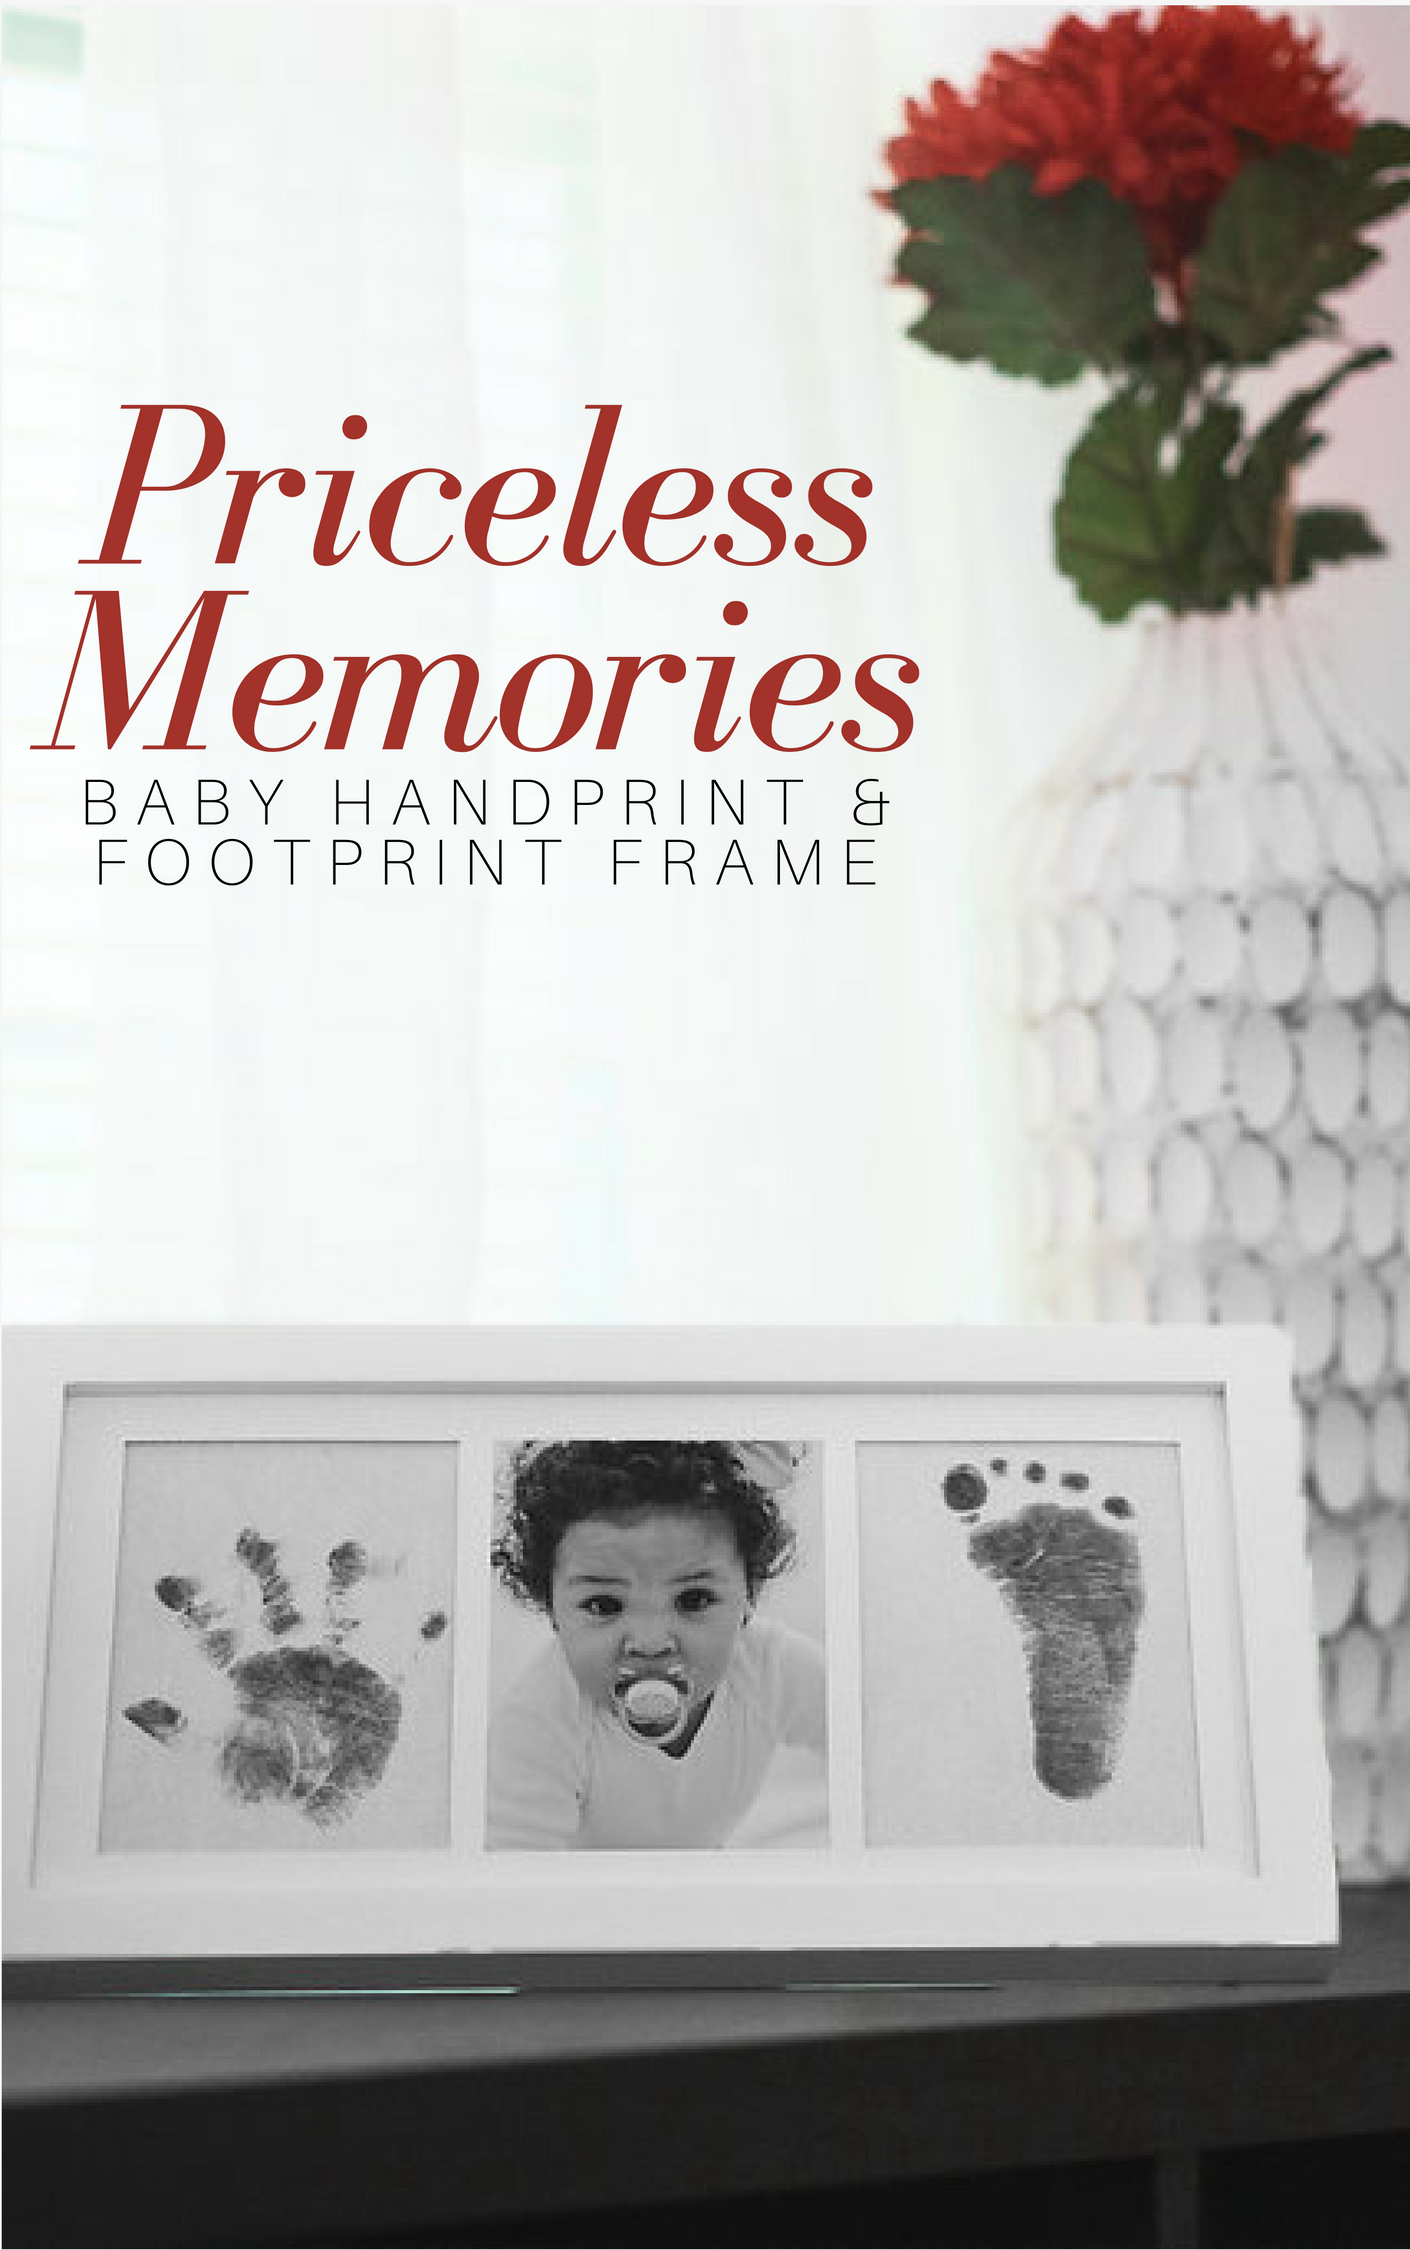 The baby footprint ink kit from bubzi co is an easy diy project and perfect baby keepsake gift for new parents or grandparents